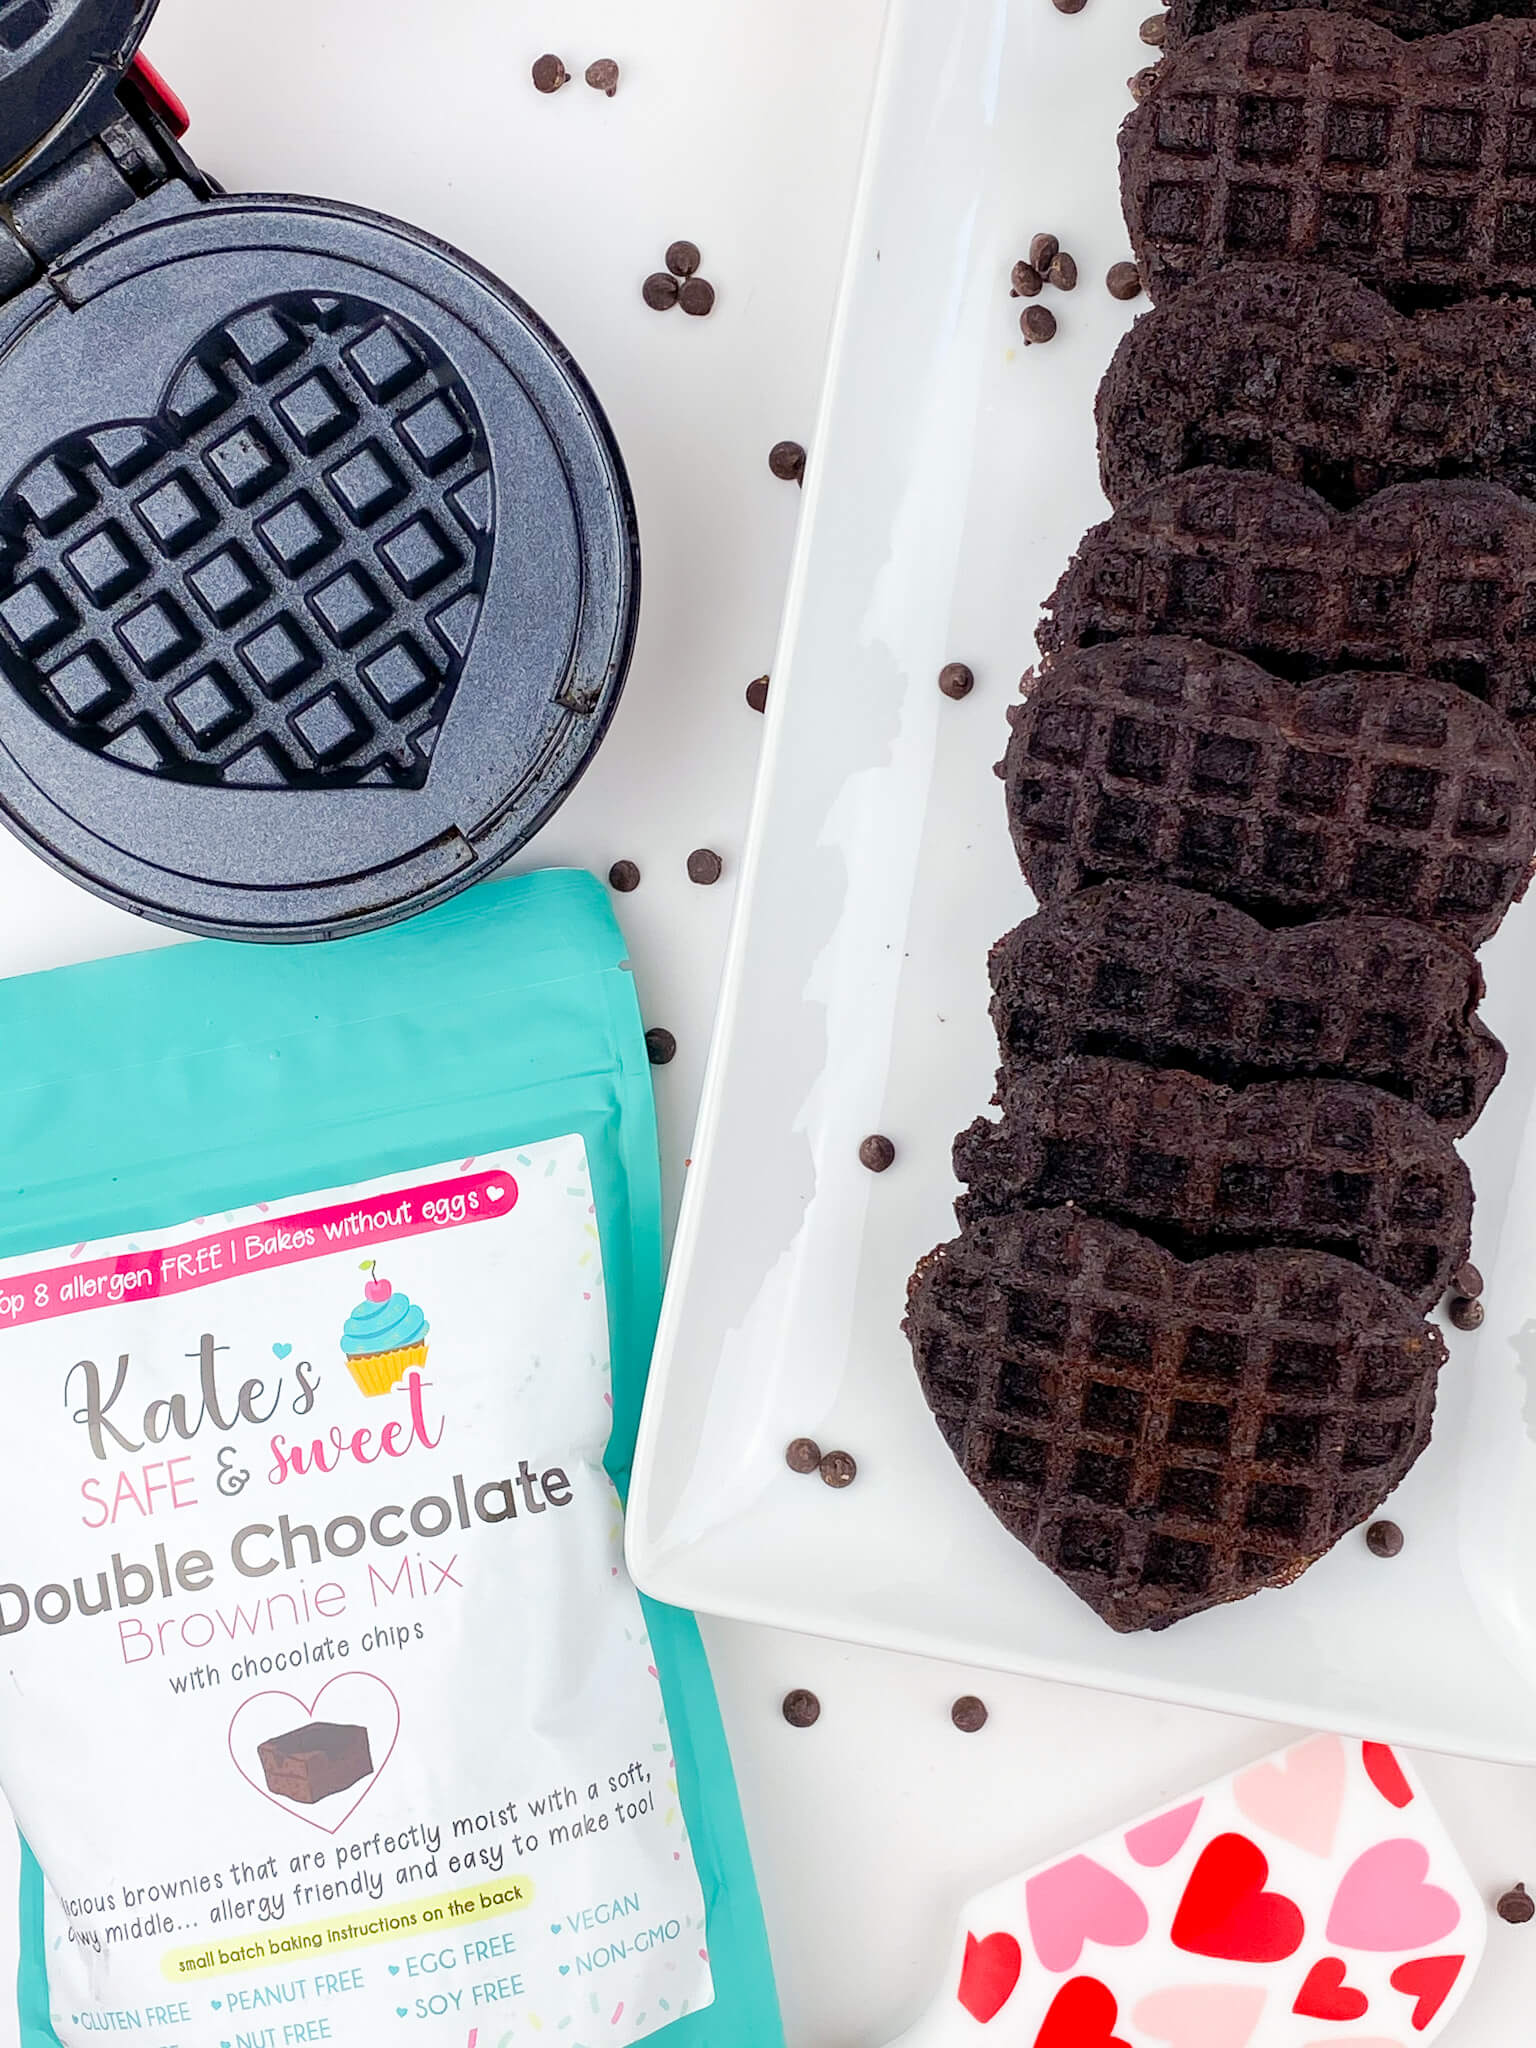 Kate's Safe & Sweet - Brownie Waffles with Maker